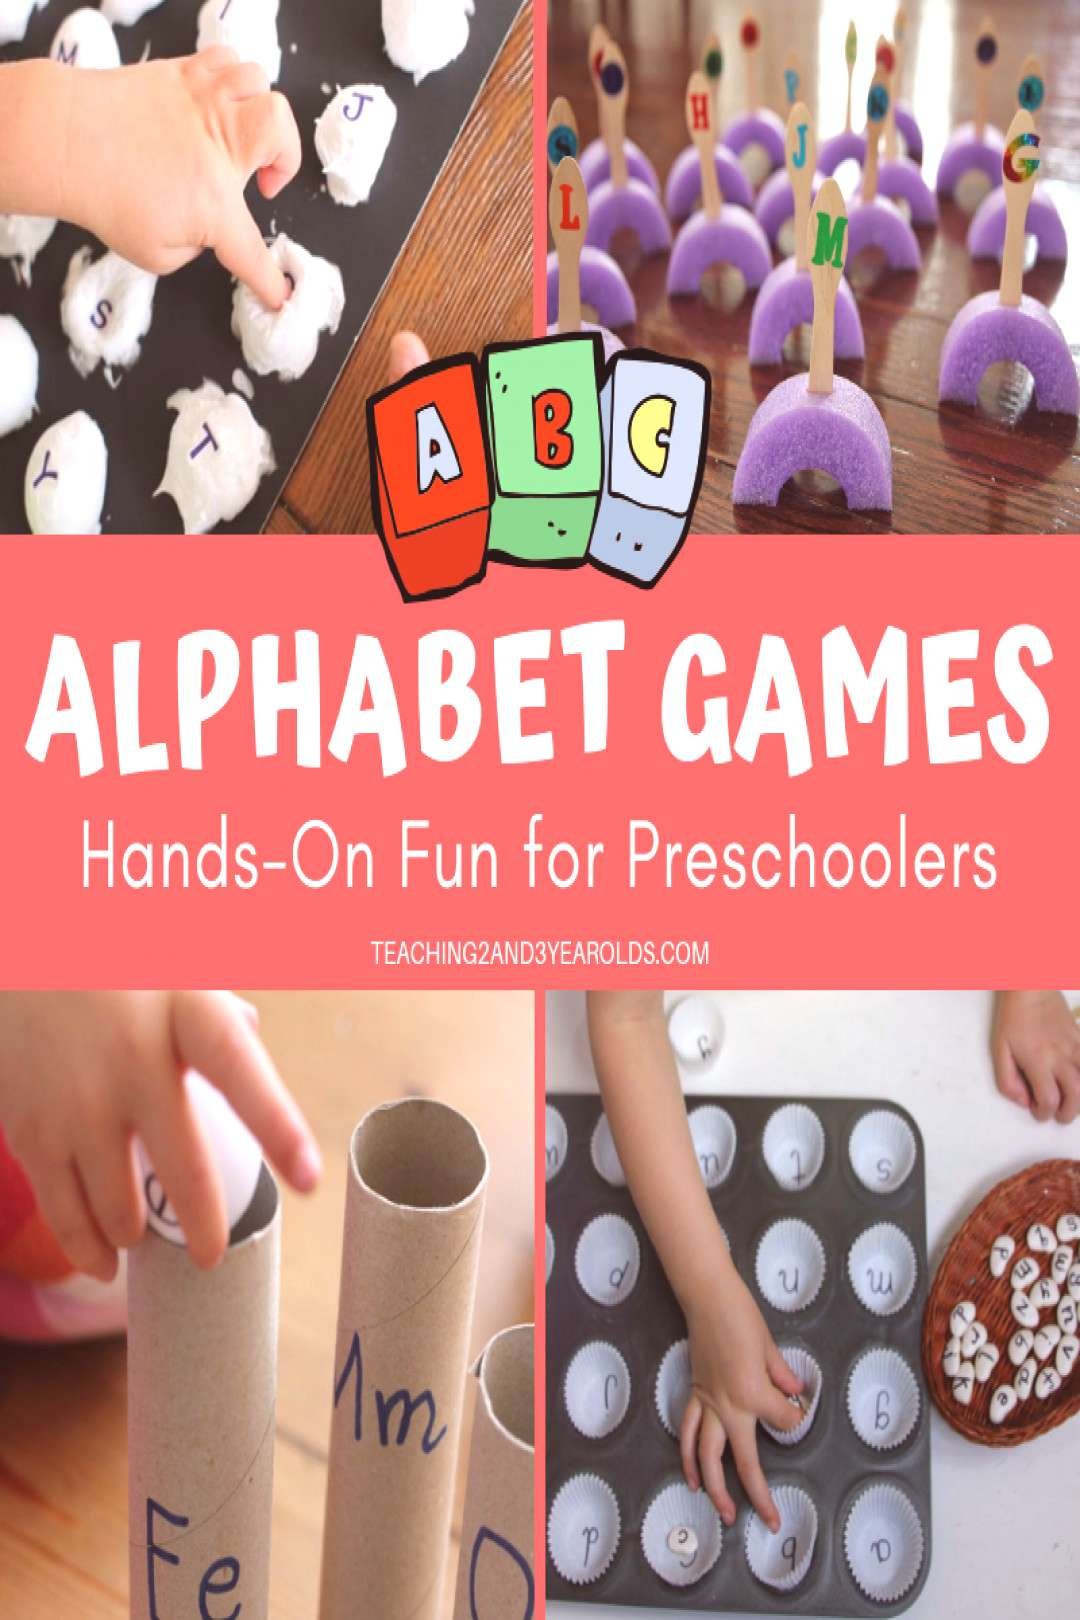 Looking for ways to work on the ABCs? These preschool alphabet games work on letter recognition and